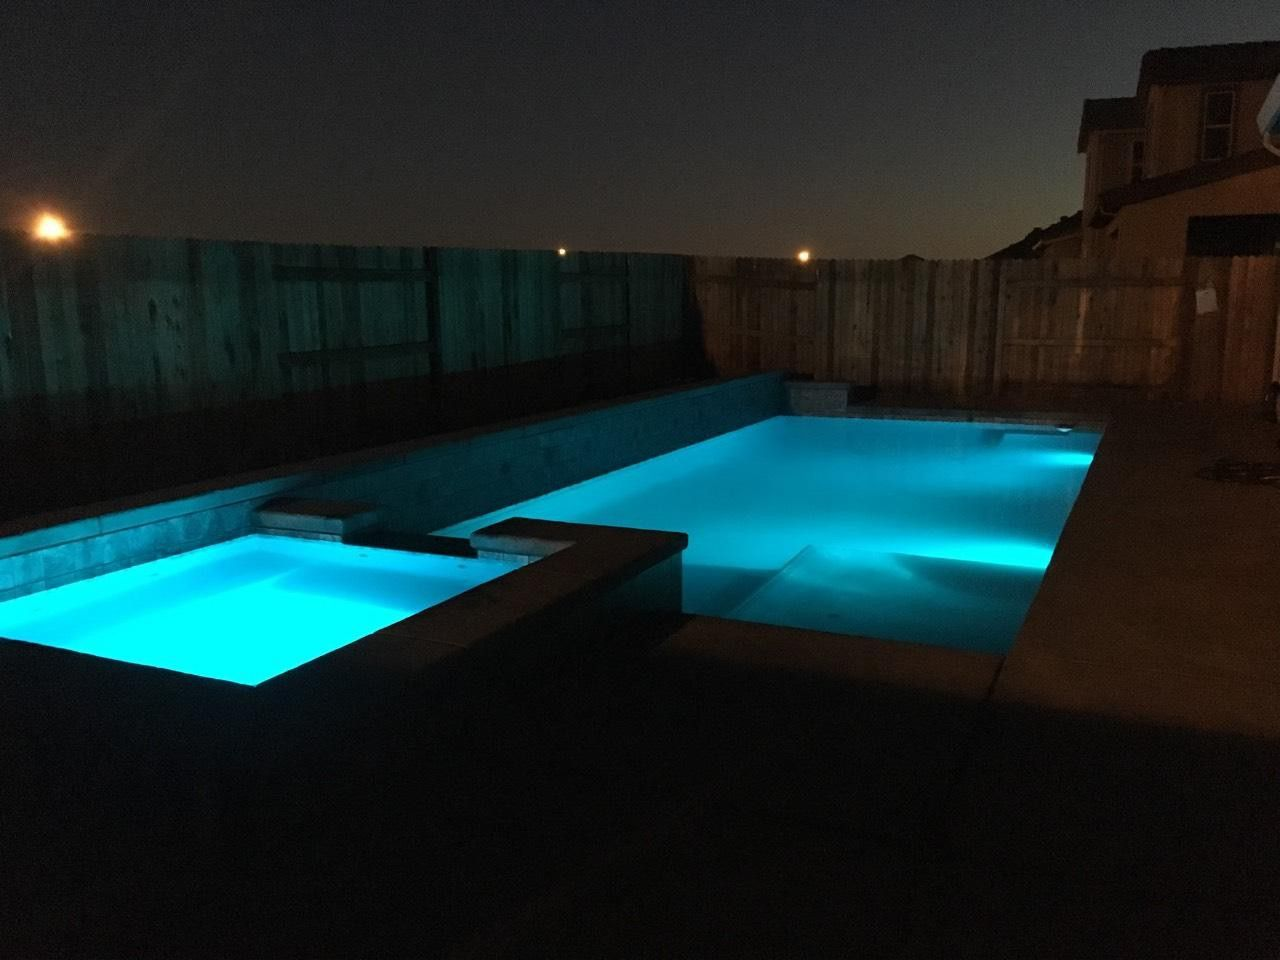 Swimming Pool And Spa With Color Led Lights At Night Pool At